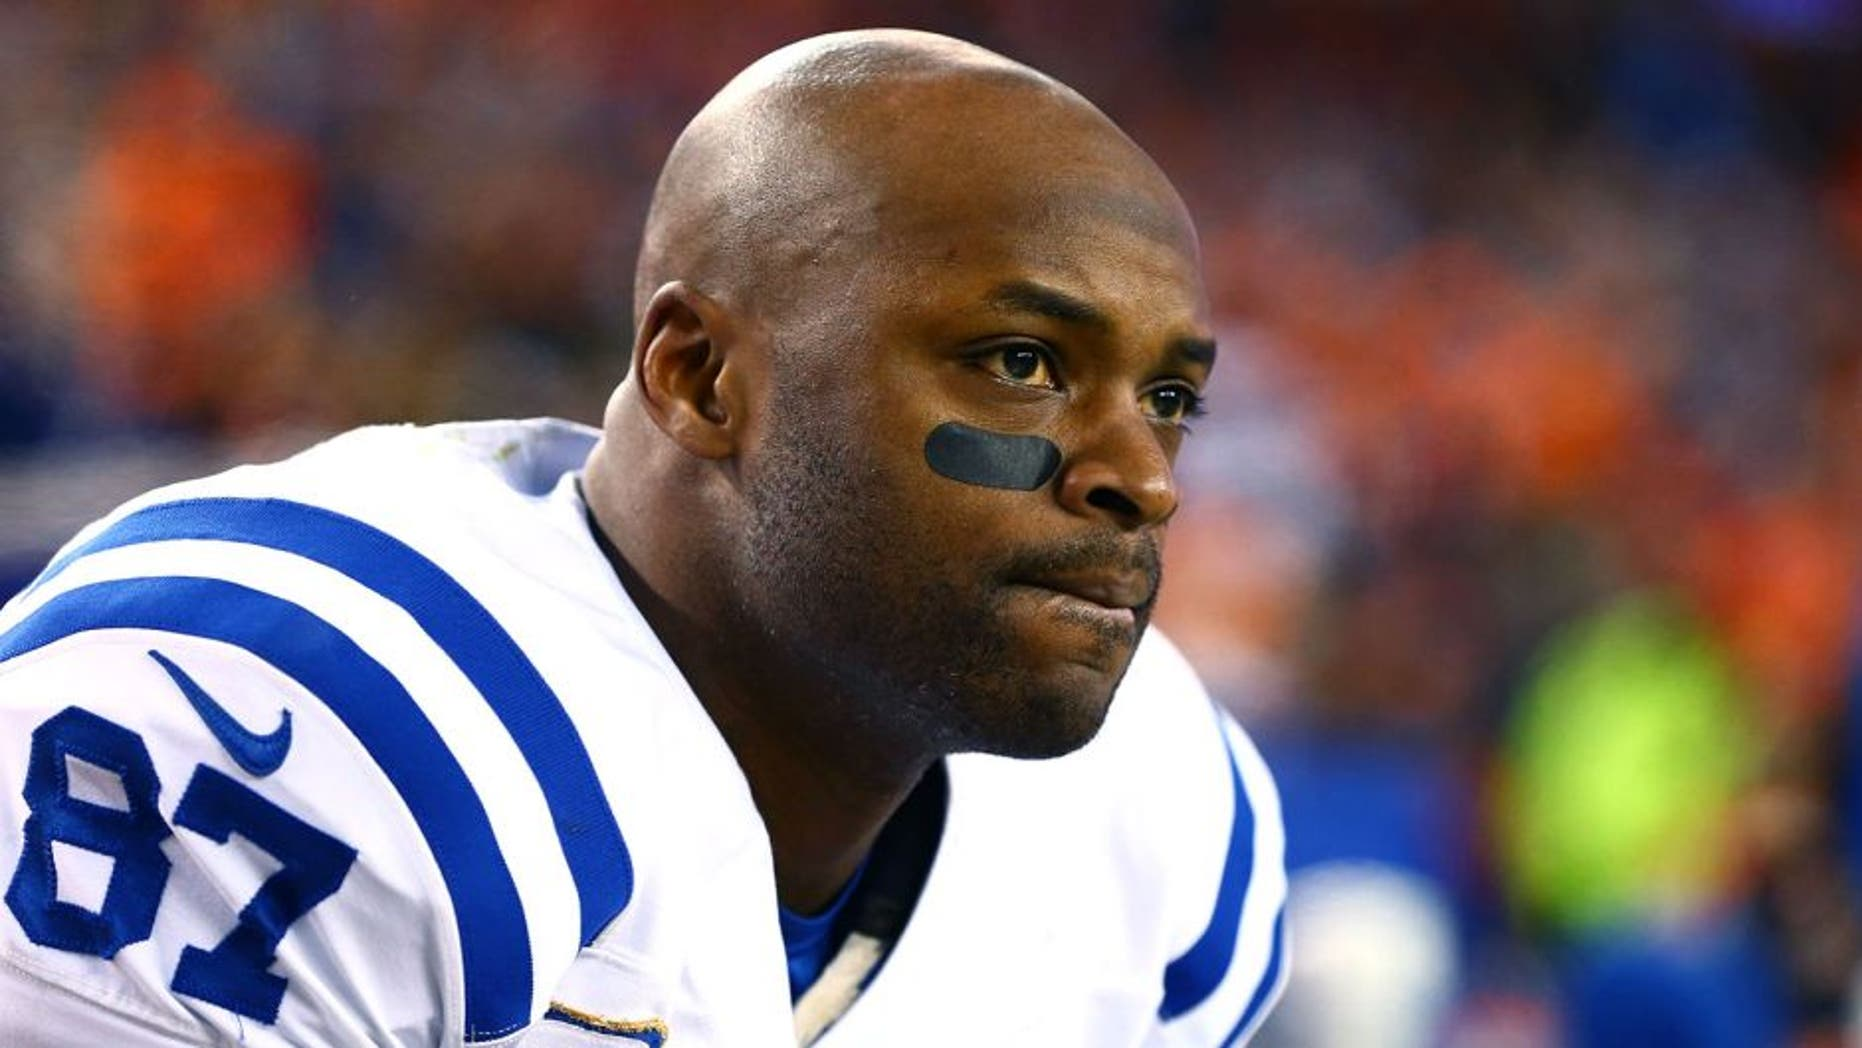 Jan 11, 2015; Denver, CO, USA; Indianapolis Colts wide receiver Reggie Wayne on the sidelines in the fourth quarter against the Denver Broncos in the 2014 AFC Divisional playoff football game at Sports Authority Field at Mile High. The Colts defeated the Broncos 24-13. Mandatory Credit: Mark J. Rebilas-USA TODAY Sports